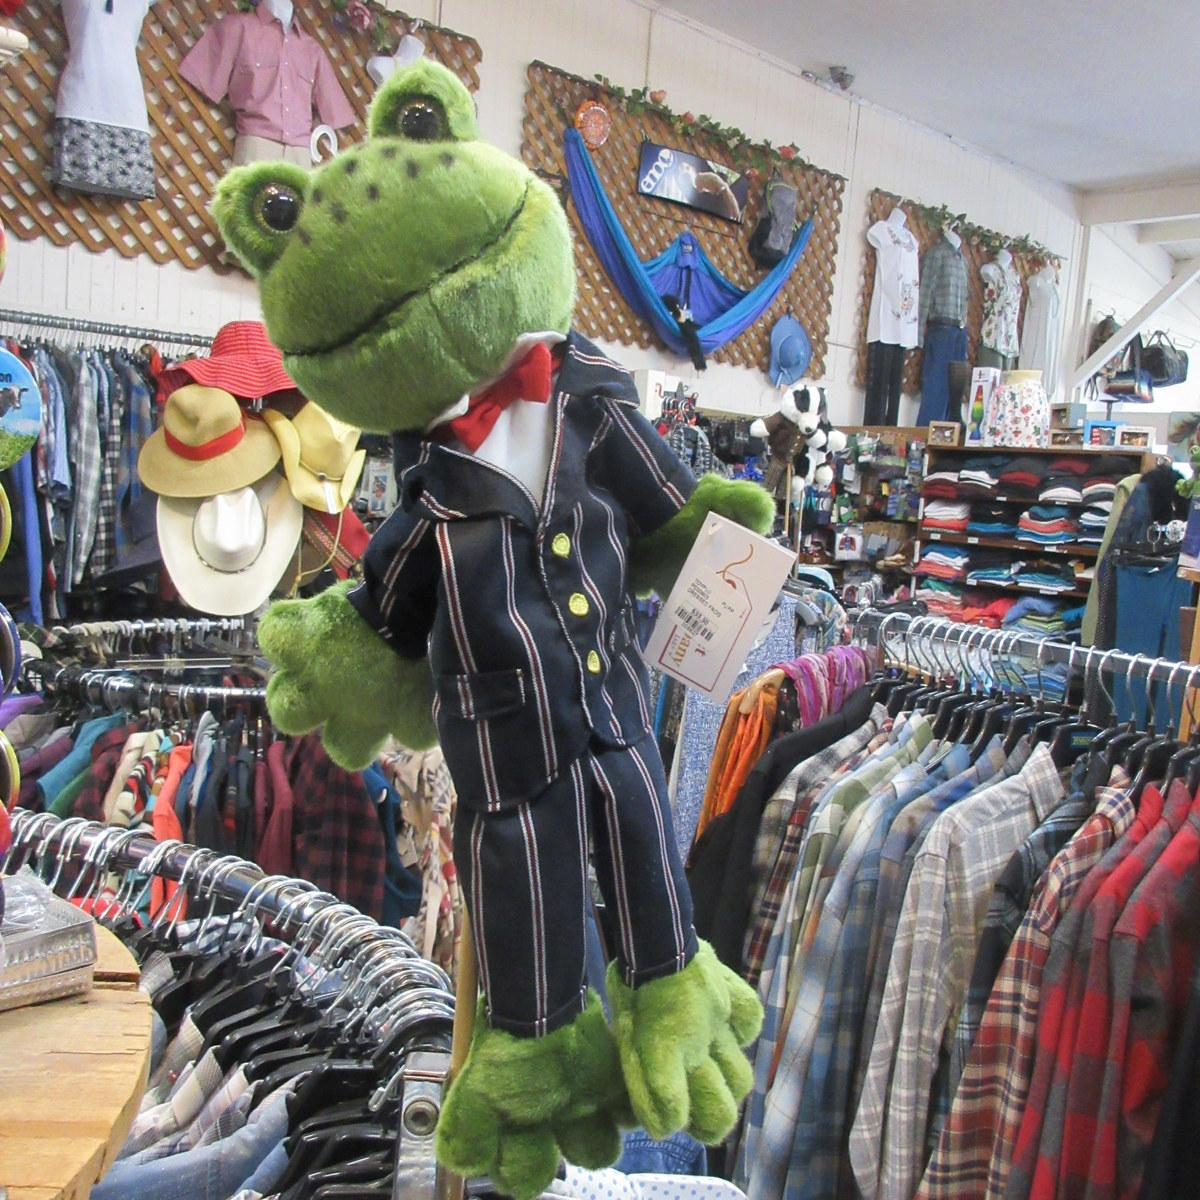 Dressed Frog Puppet from The Puppet Company